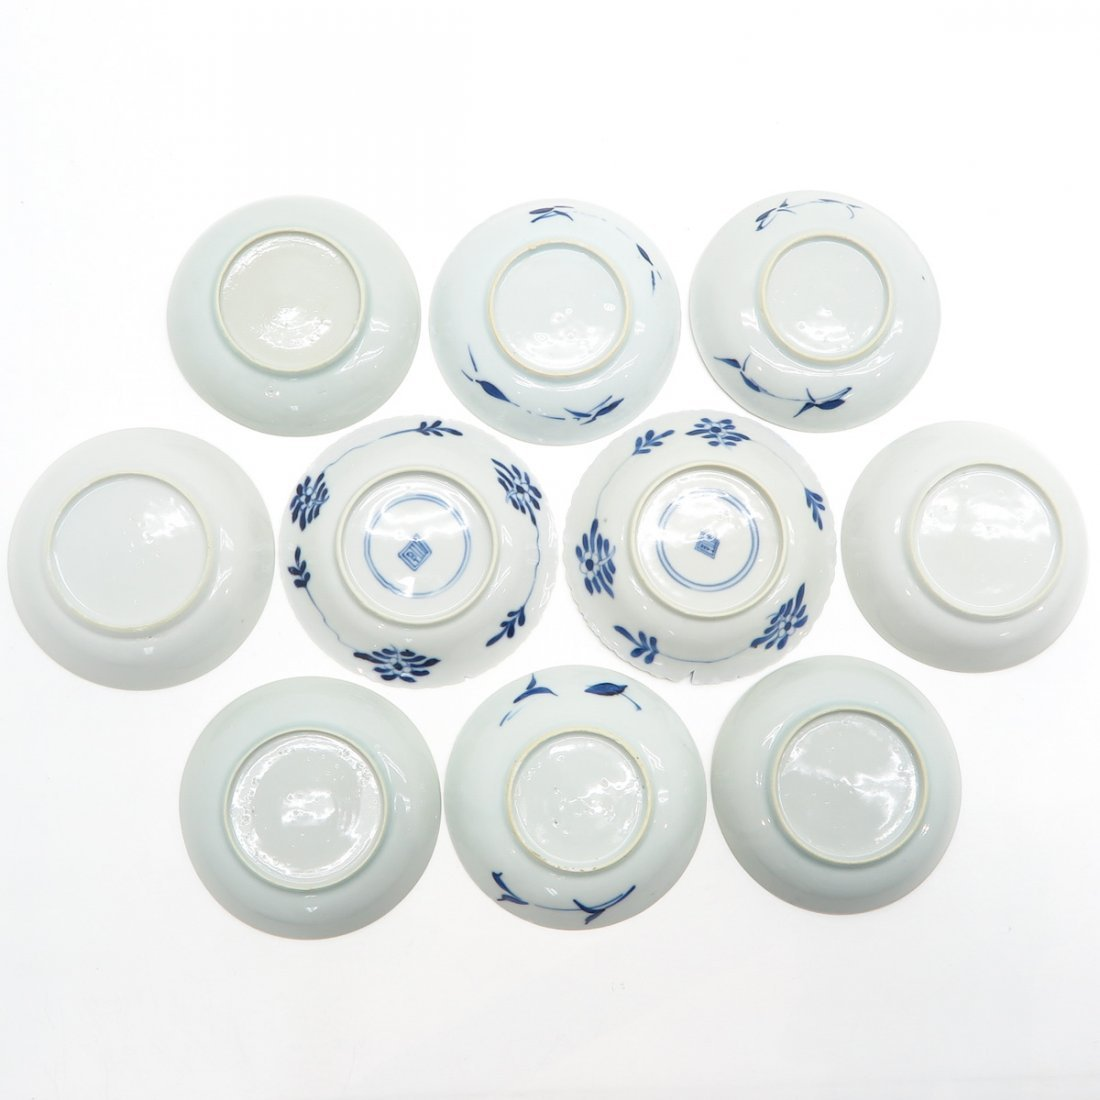 Lot of 10 Small Plates - 2